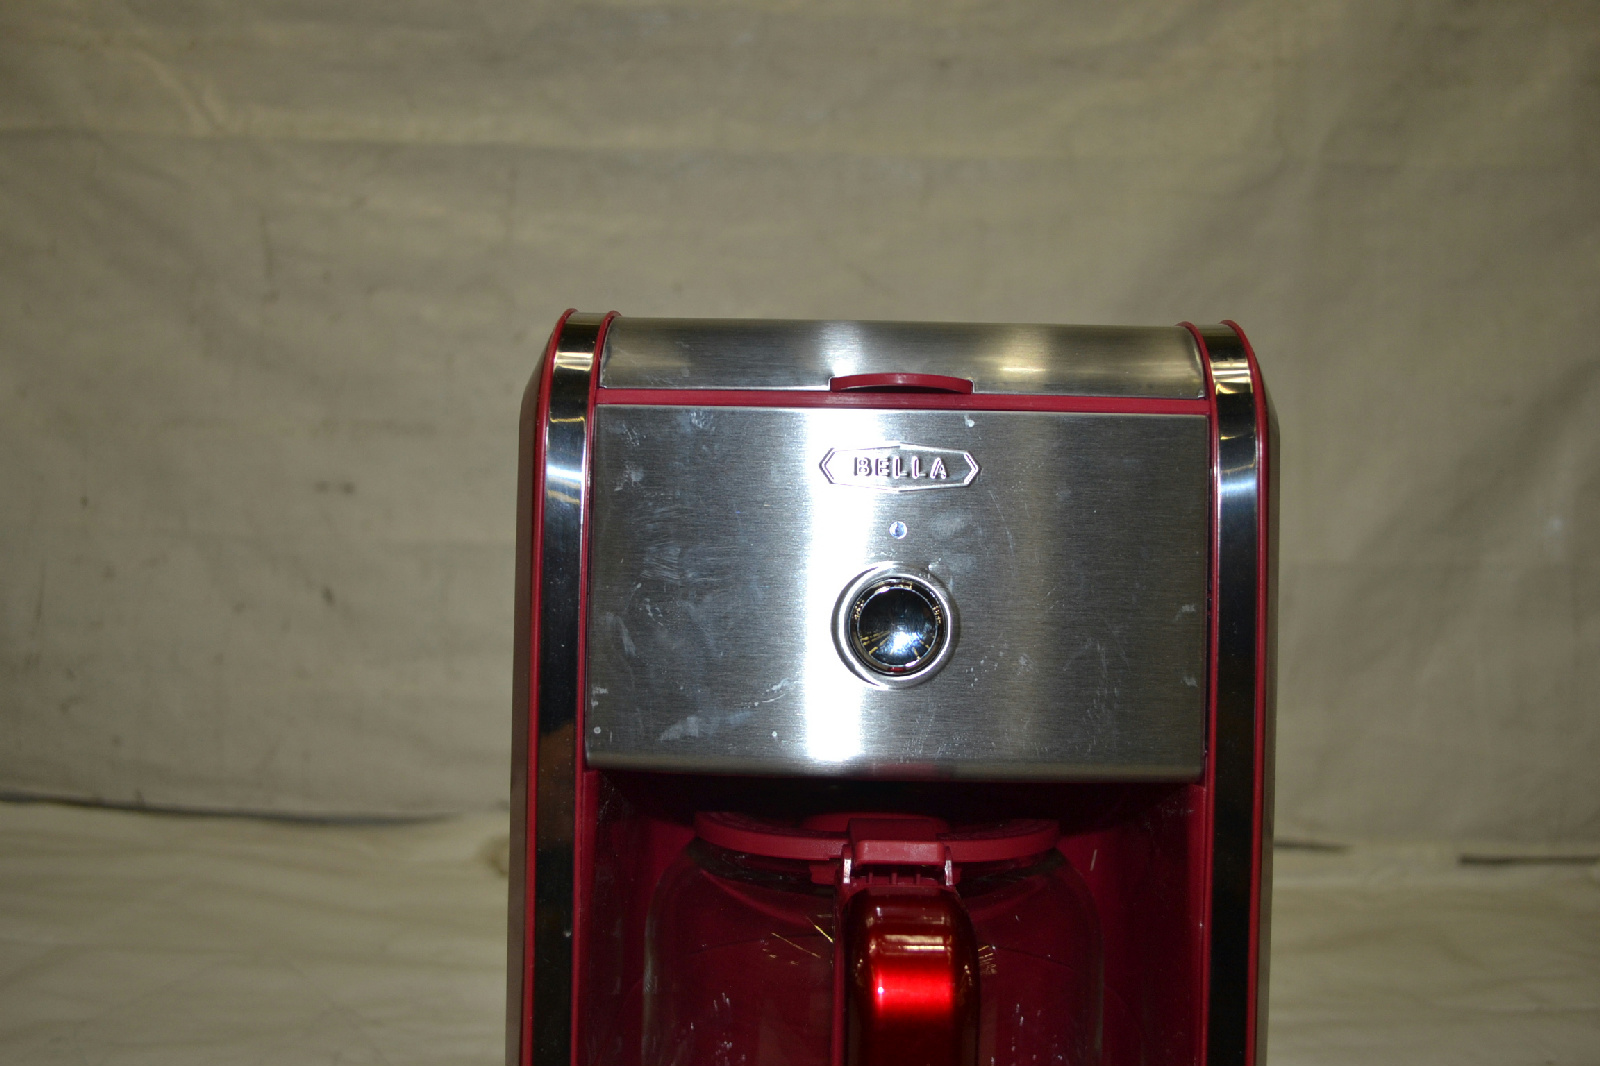 Bella 13839 Dots Collection 12 Cup Programmable Coffee Maker Red eBay